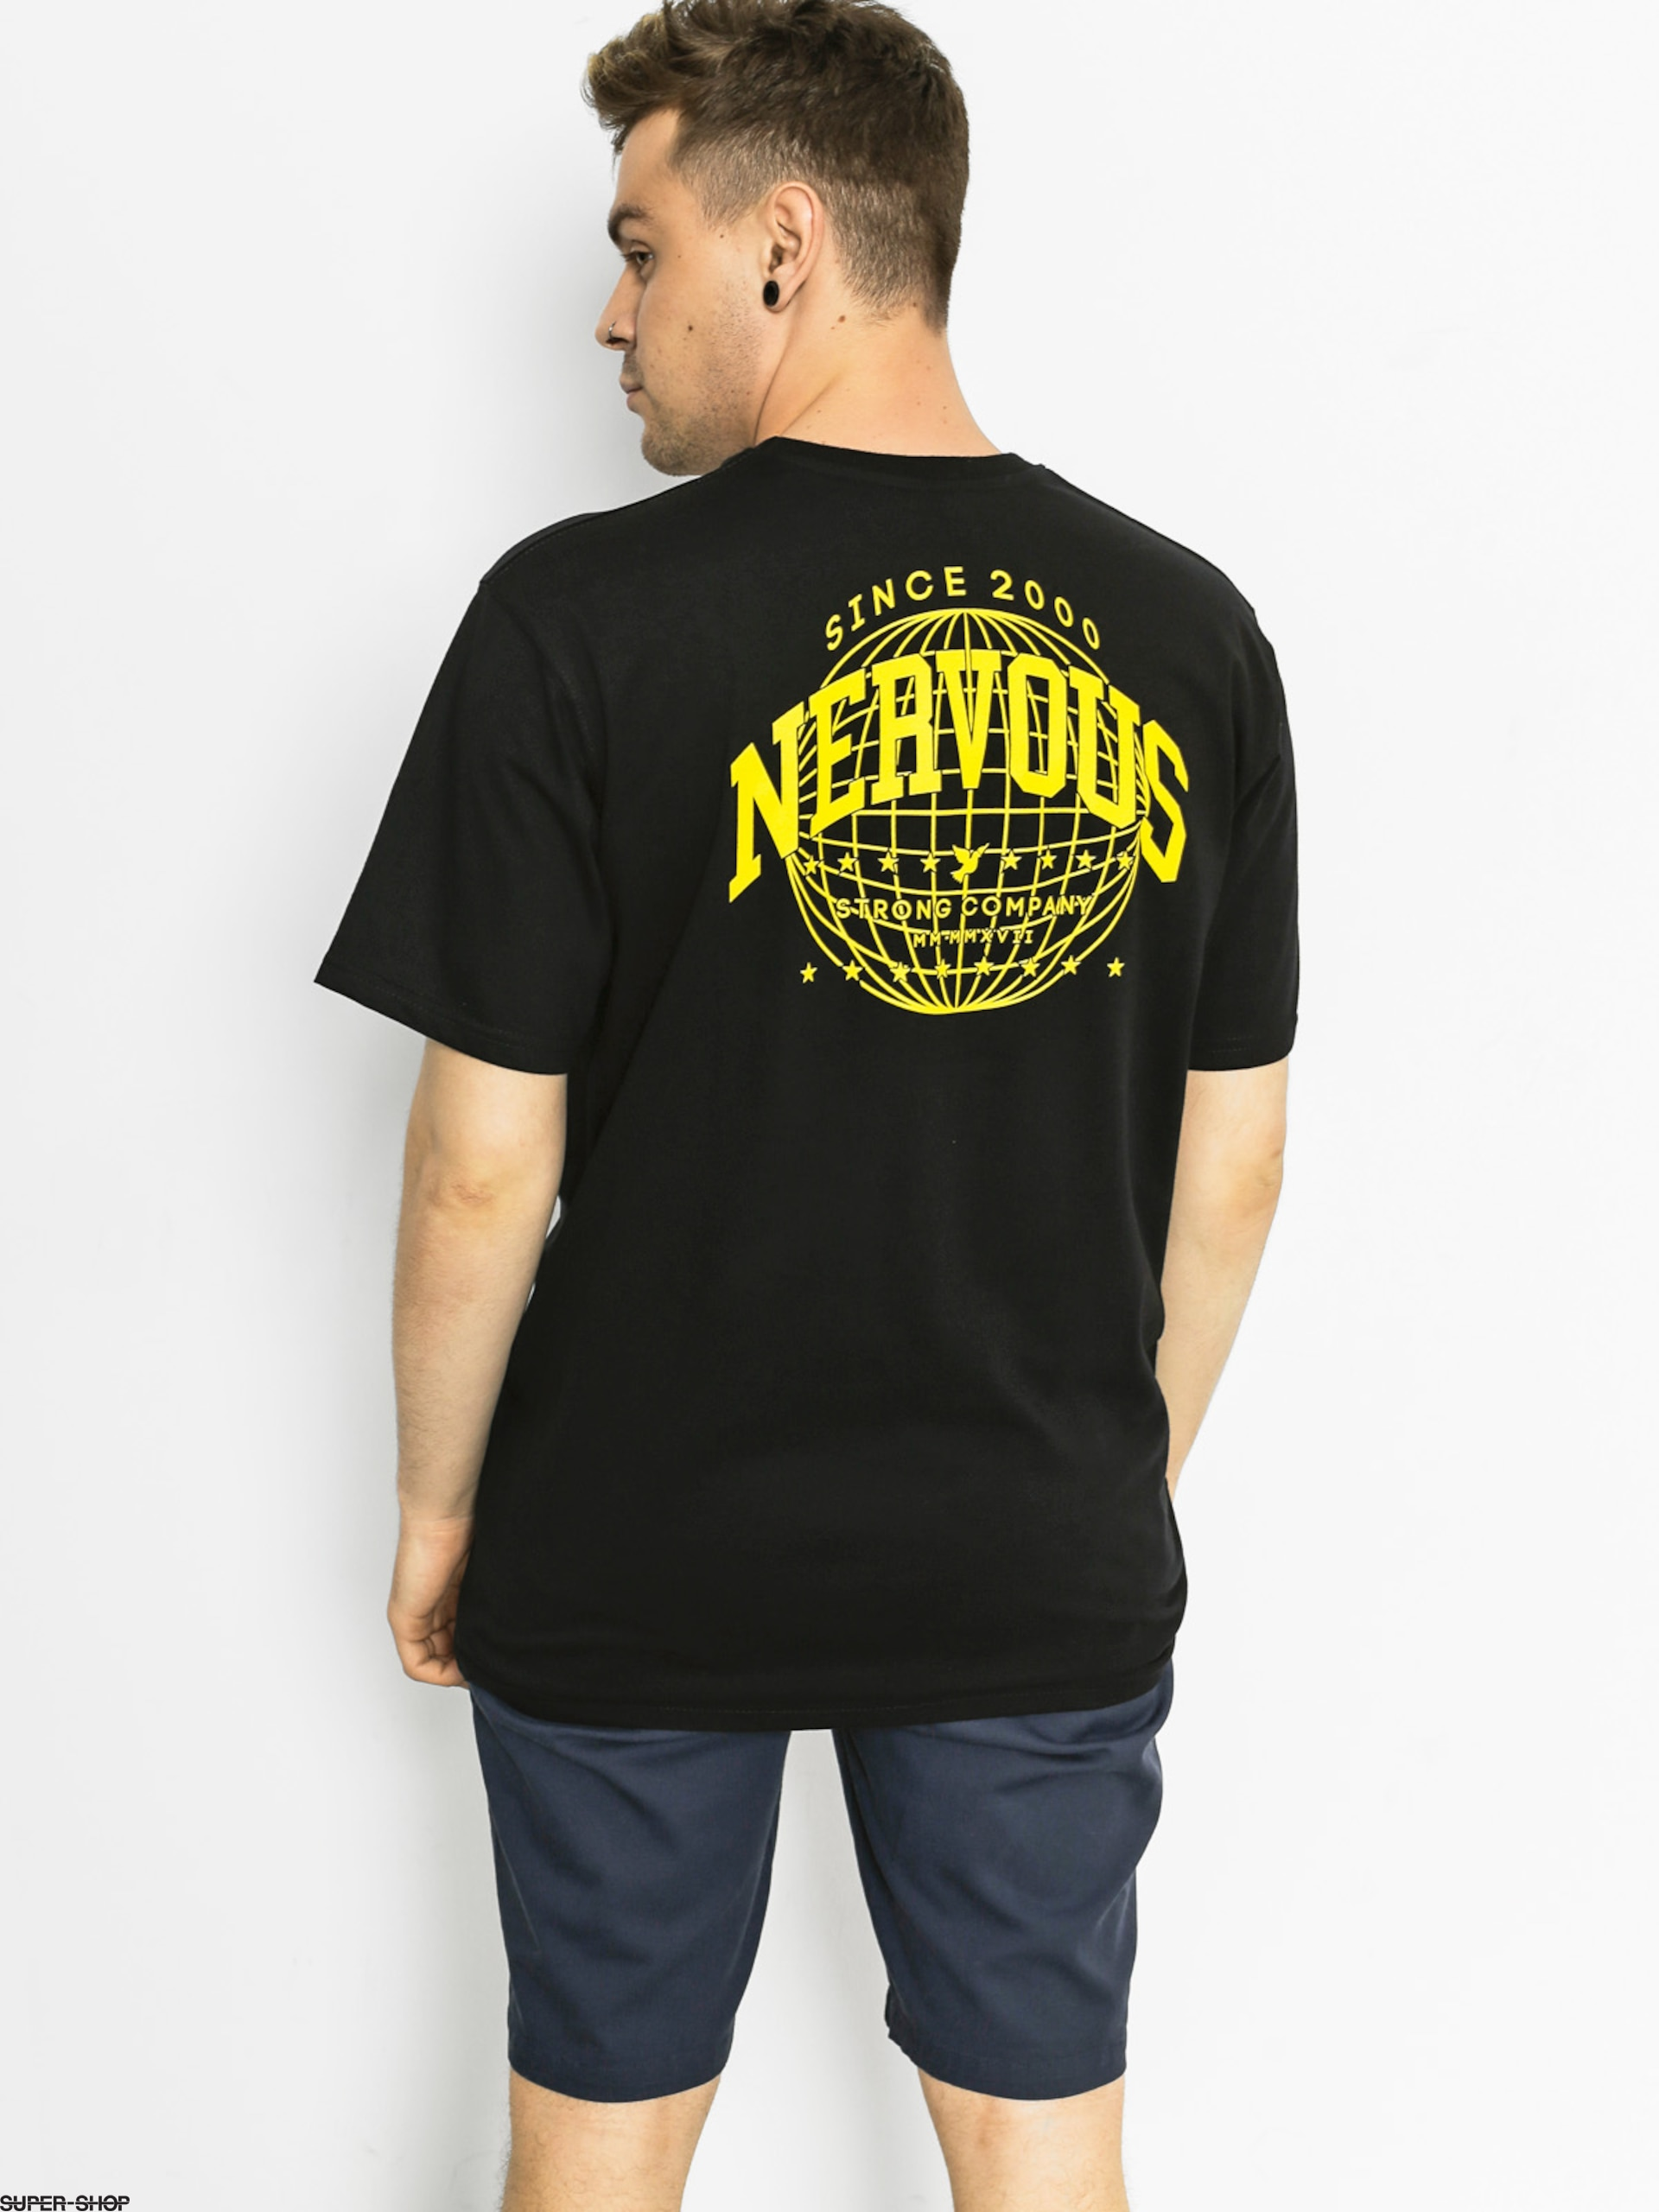 Nervous T-Shirt World